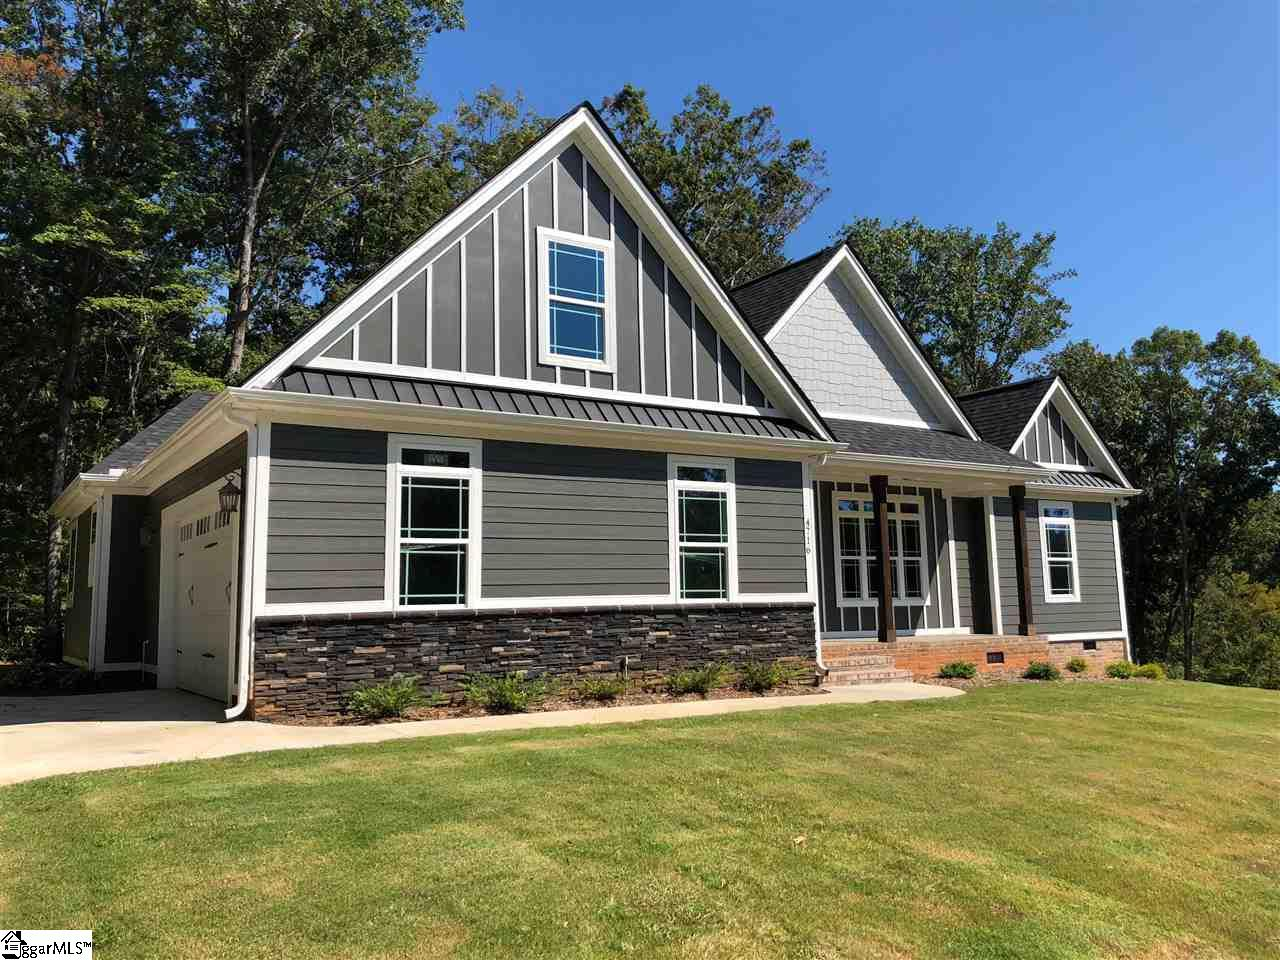 blue ridge Road, Greer, SC 29651